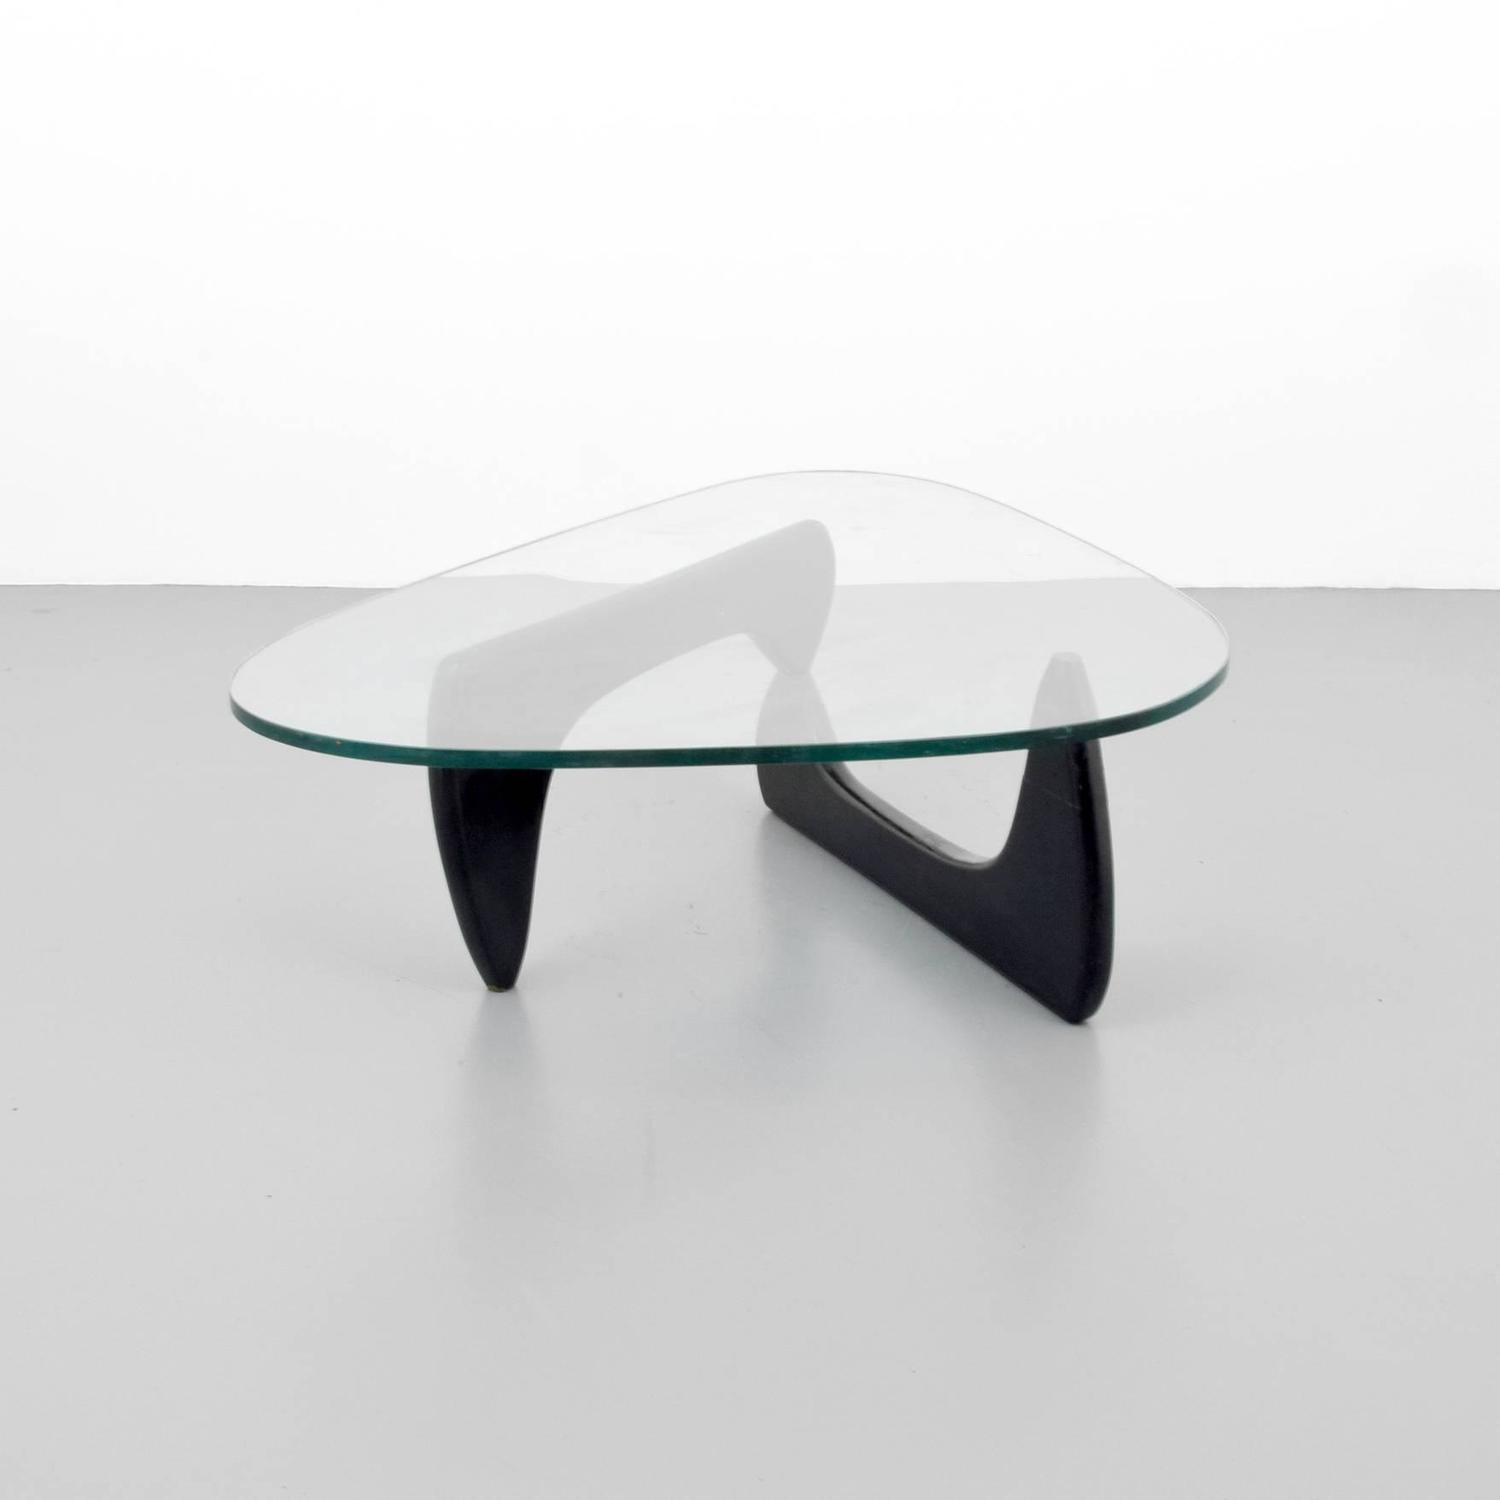 Early Edition Isamu Noguchi Table In 1950 Table By Herman Miller 1949 At 1stdibs